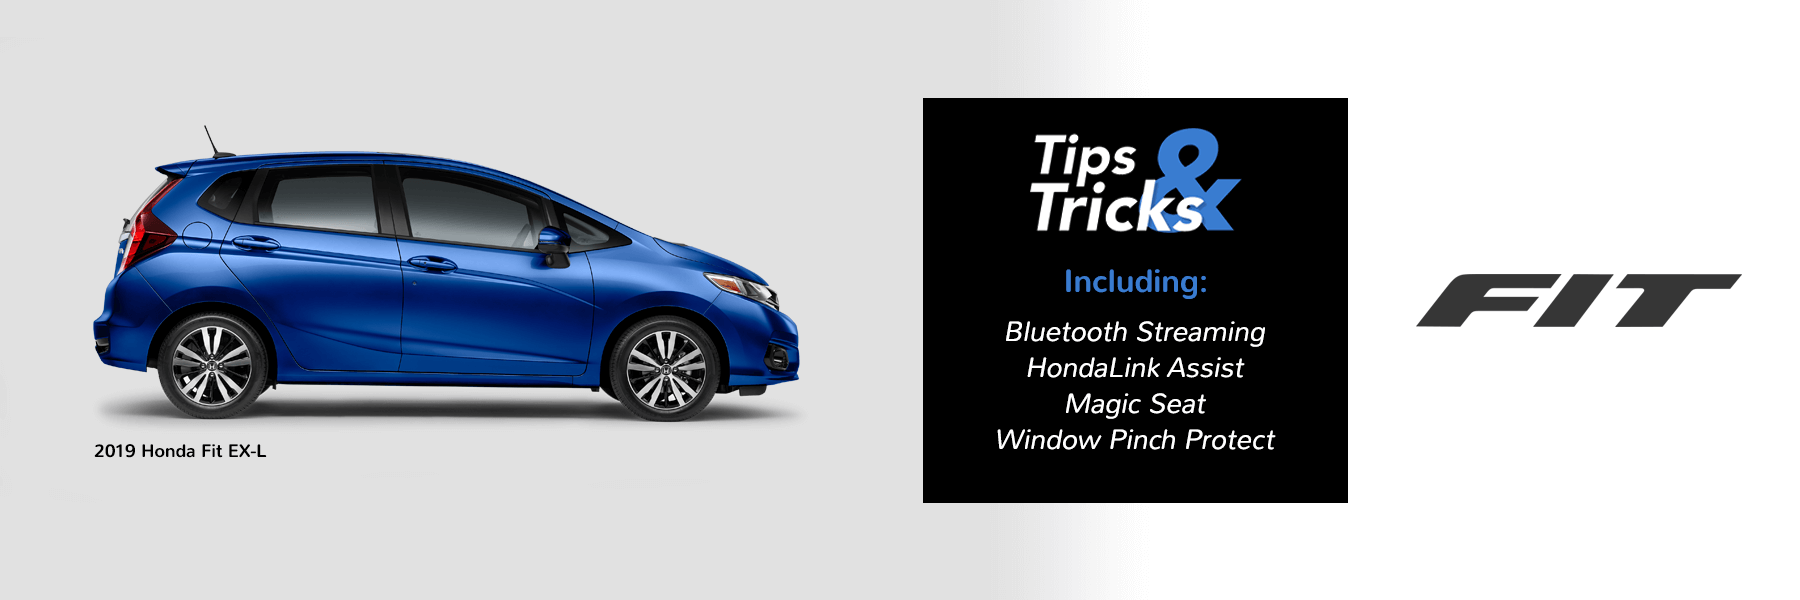 Honda Tips and Tricks 2019 Fit Slider